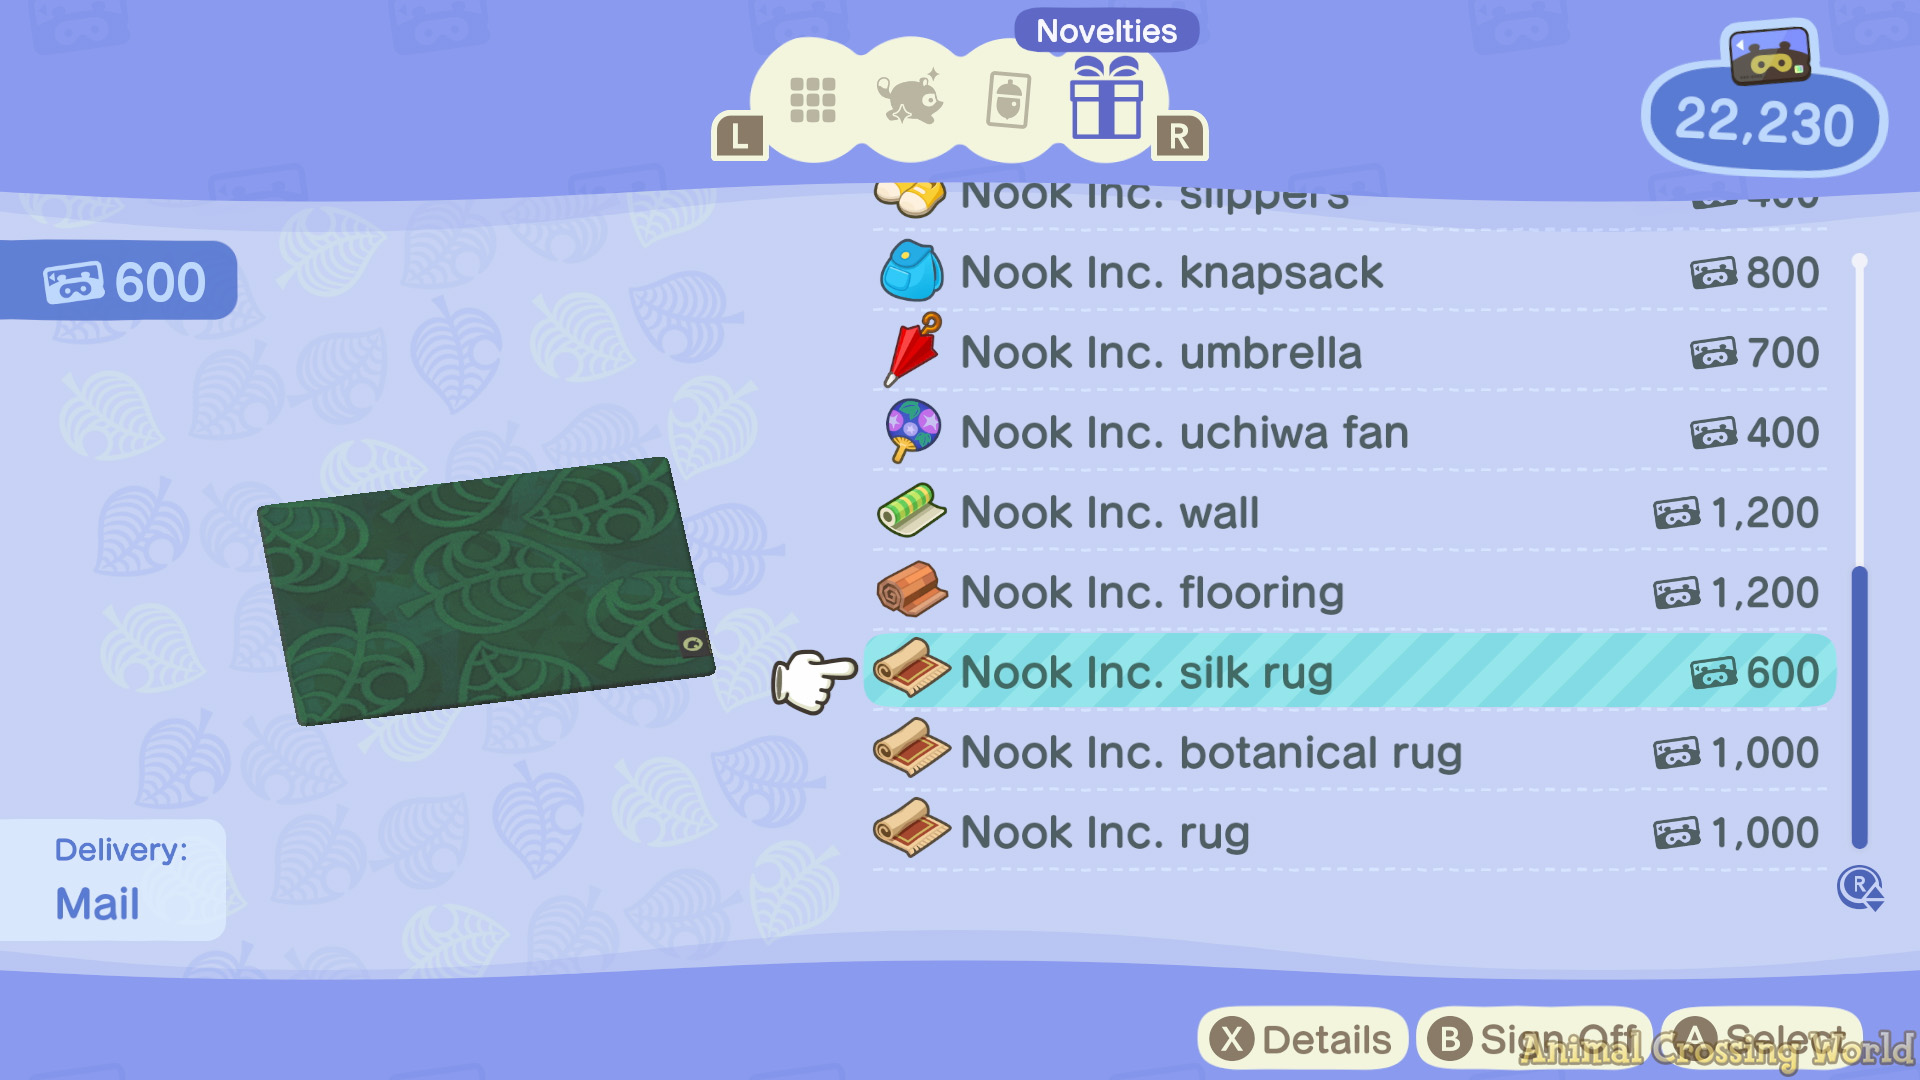 Nook Inc Silk Rug In Animal Crossing